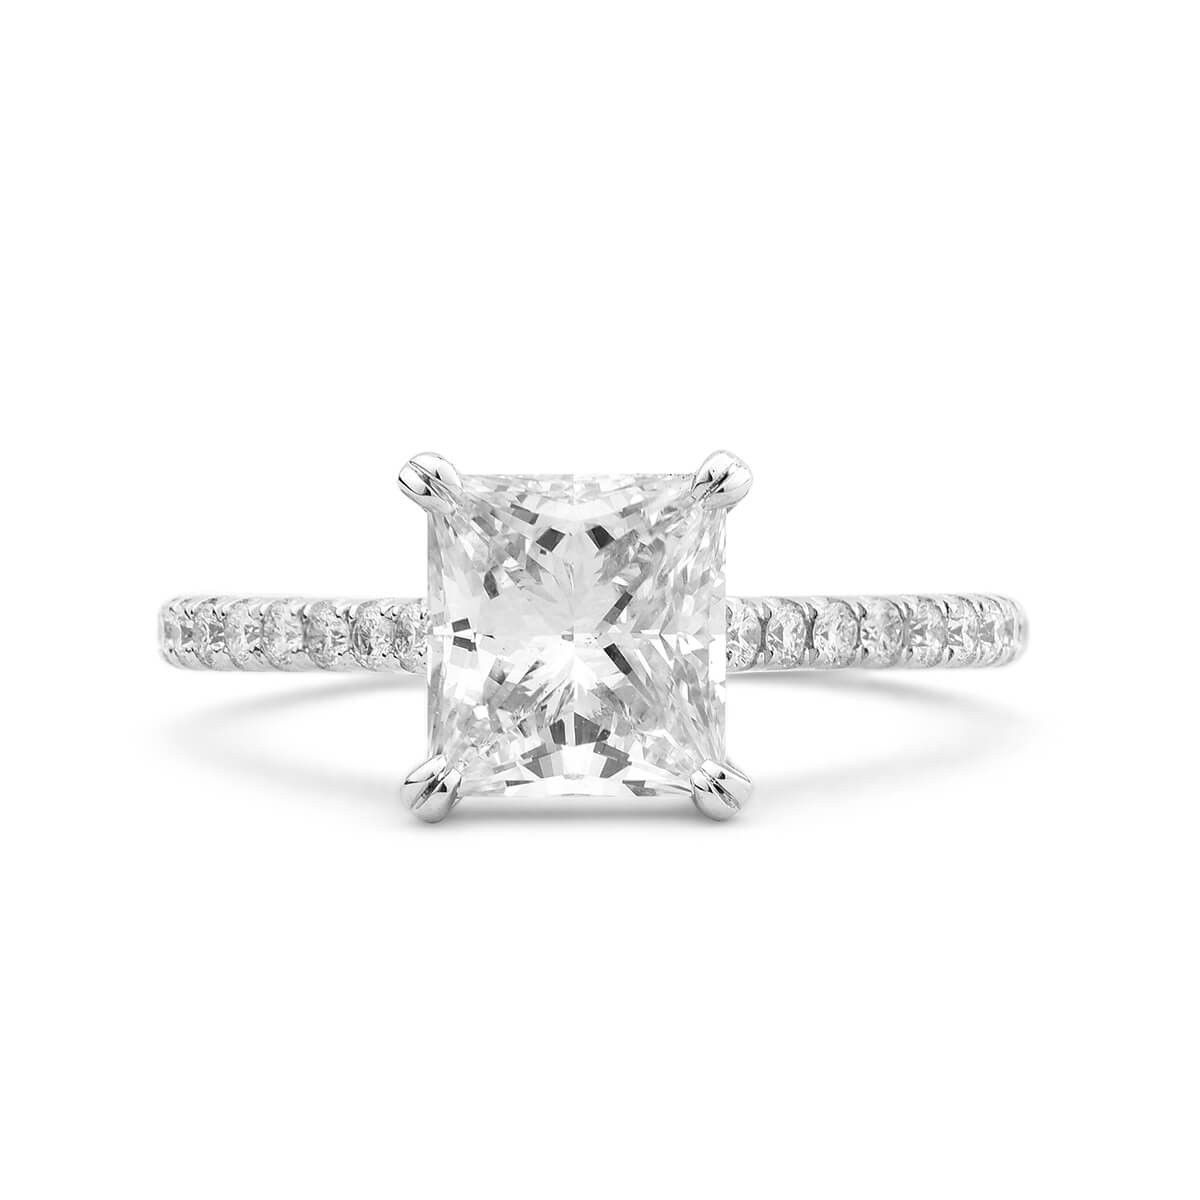 White Diamond Ring 2.01 Ct. (2.23 Ct. TW) 5bf560485